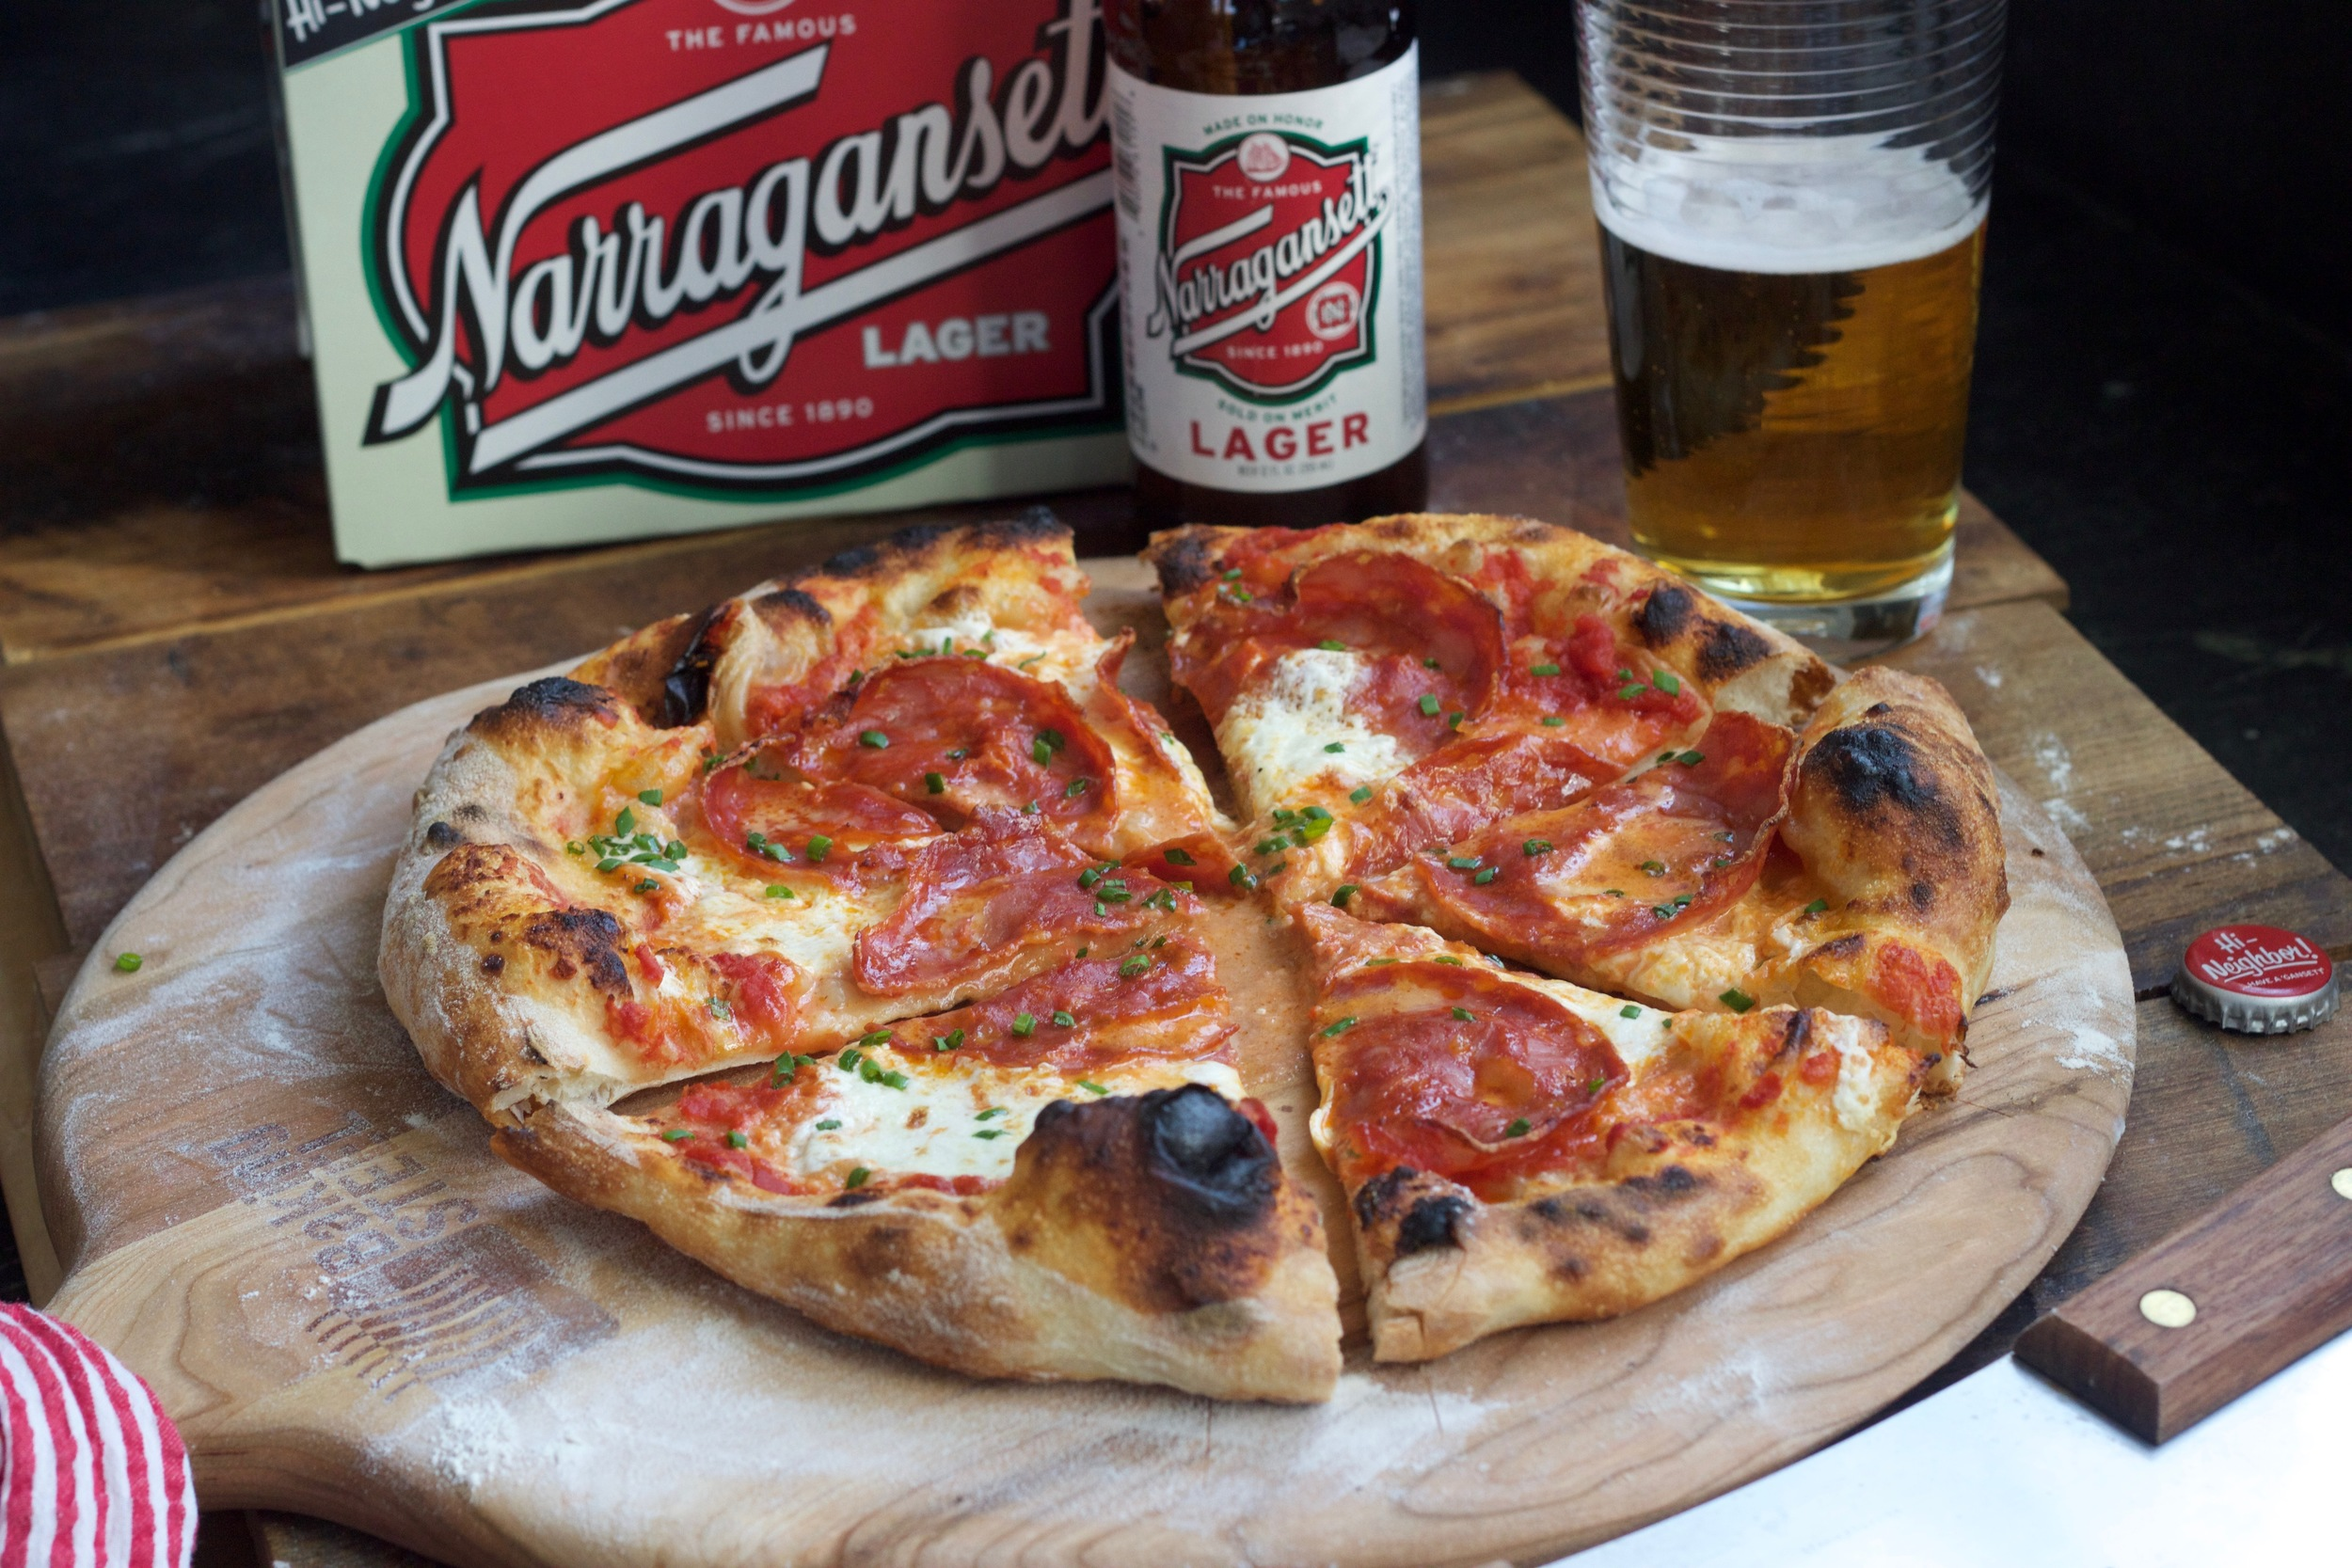 chorizo, burrata pizza with a Narragansett Lager